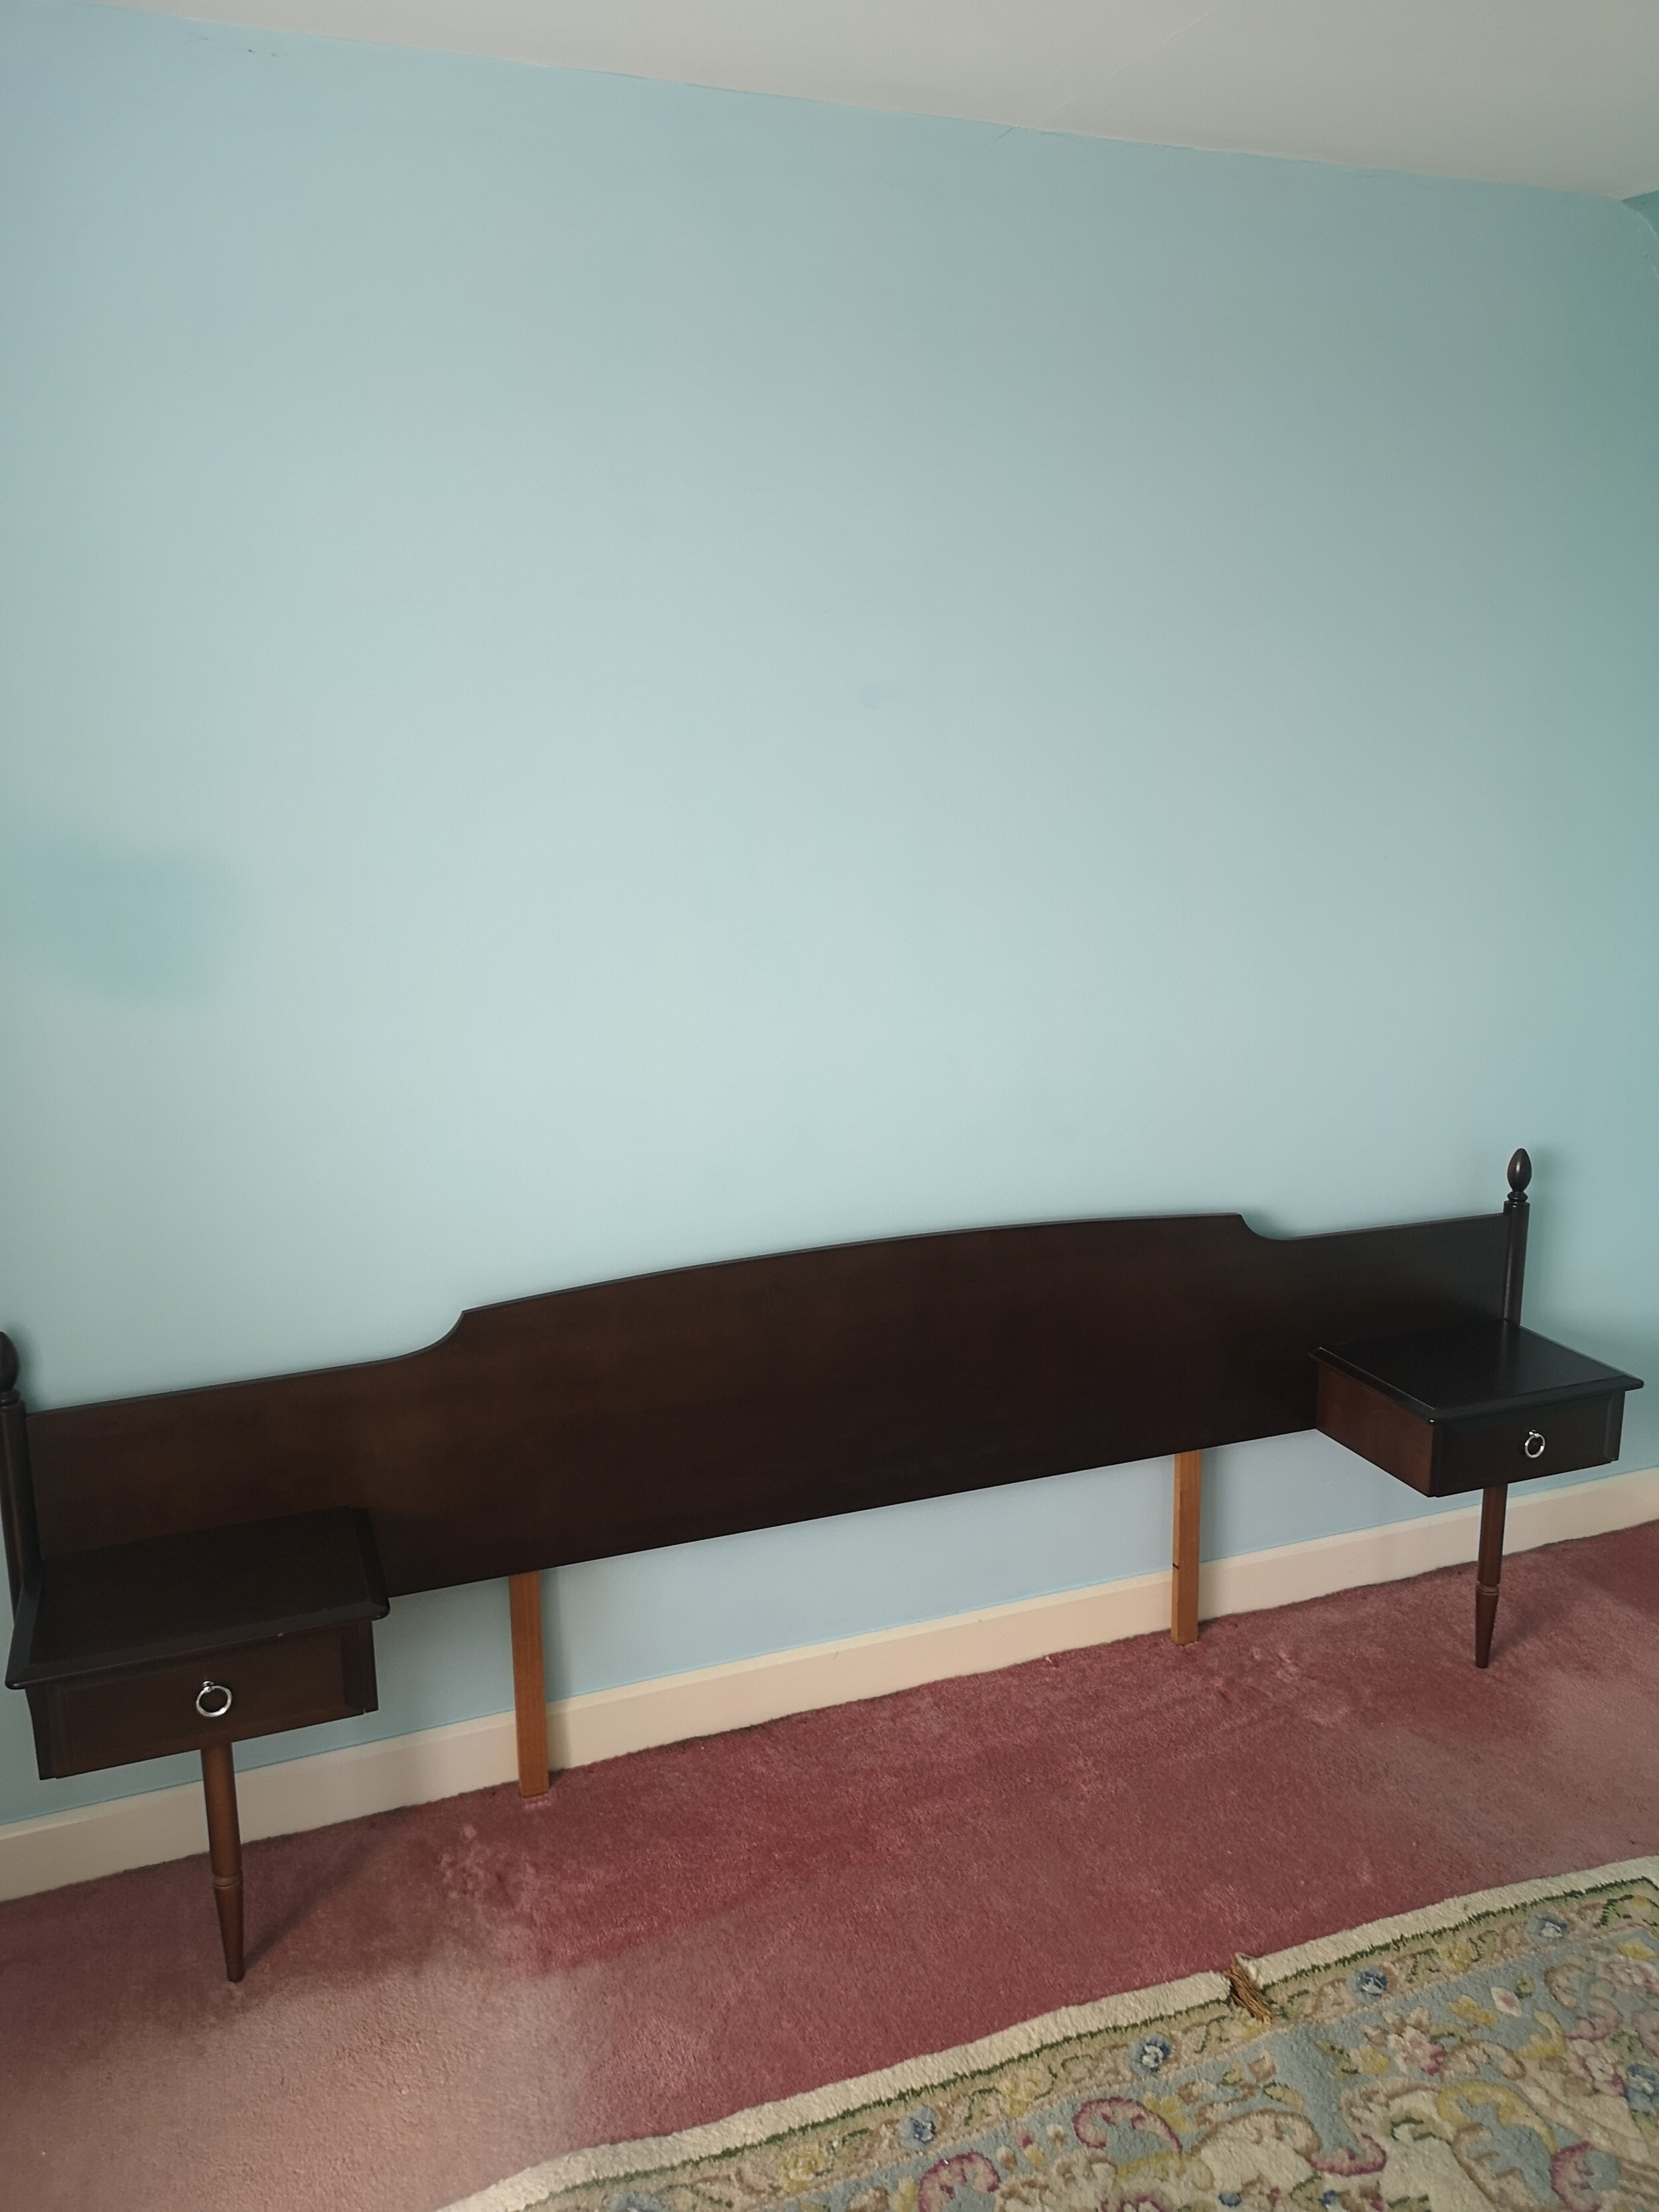 Stag minstrel head board with fitted cabinets.